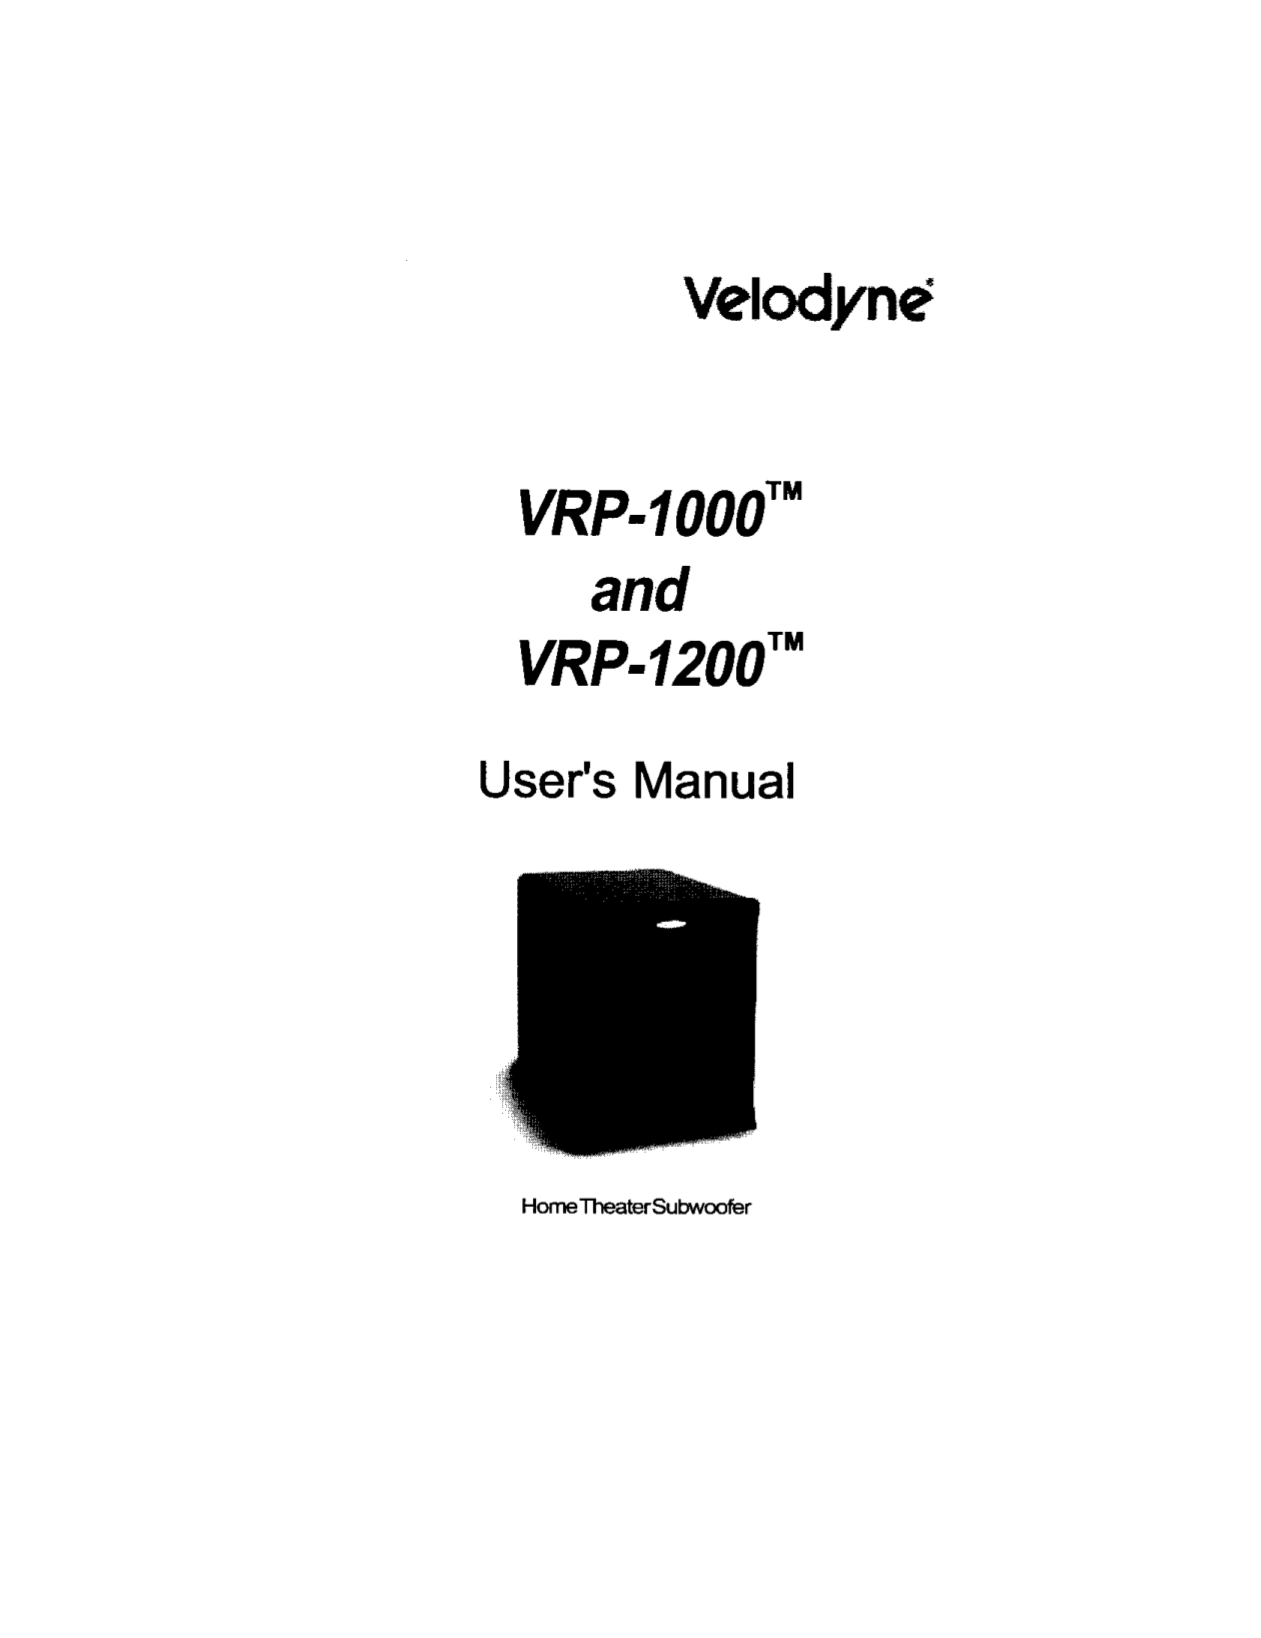 Download free pdf for Velodyne DLS-3500 Subwoofer manual